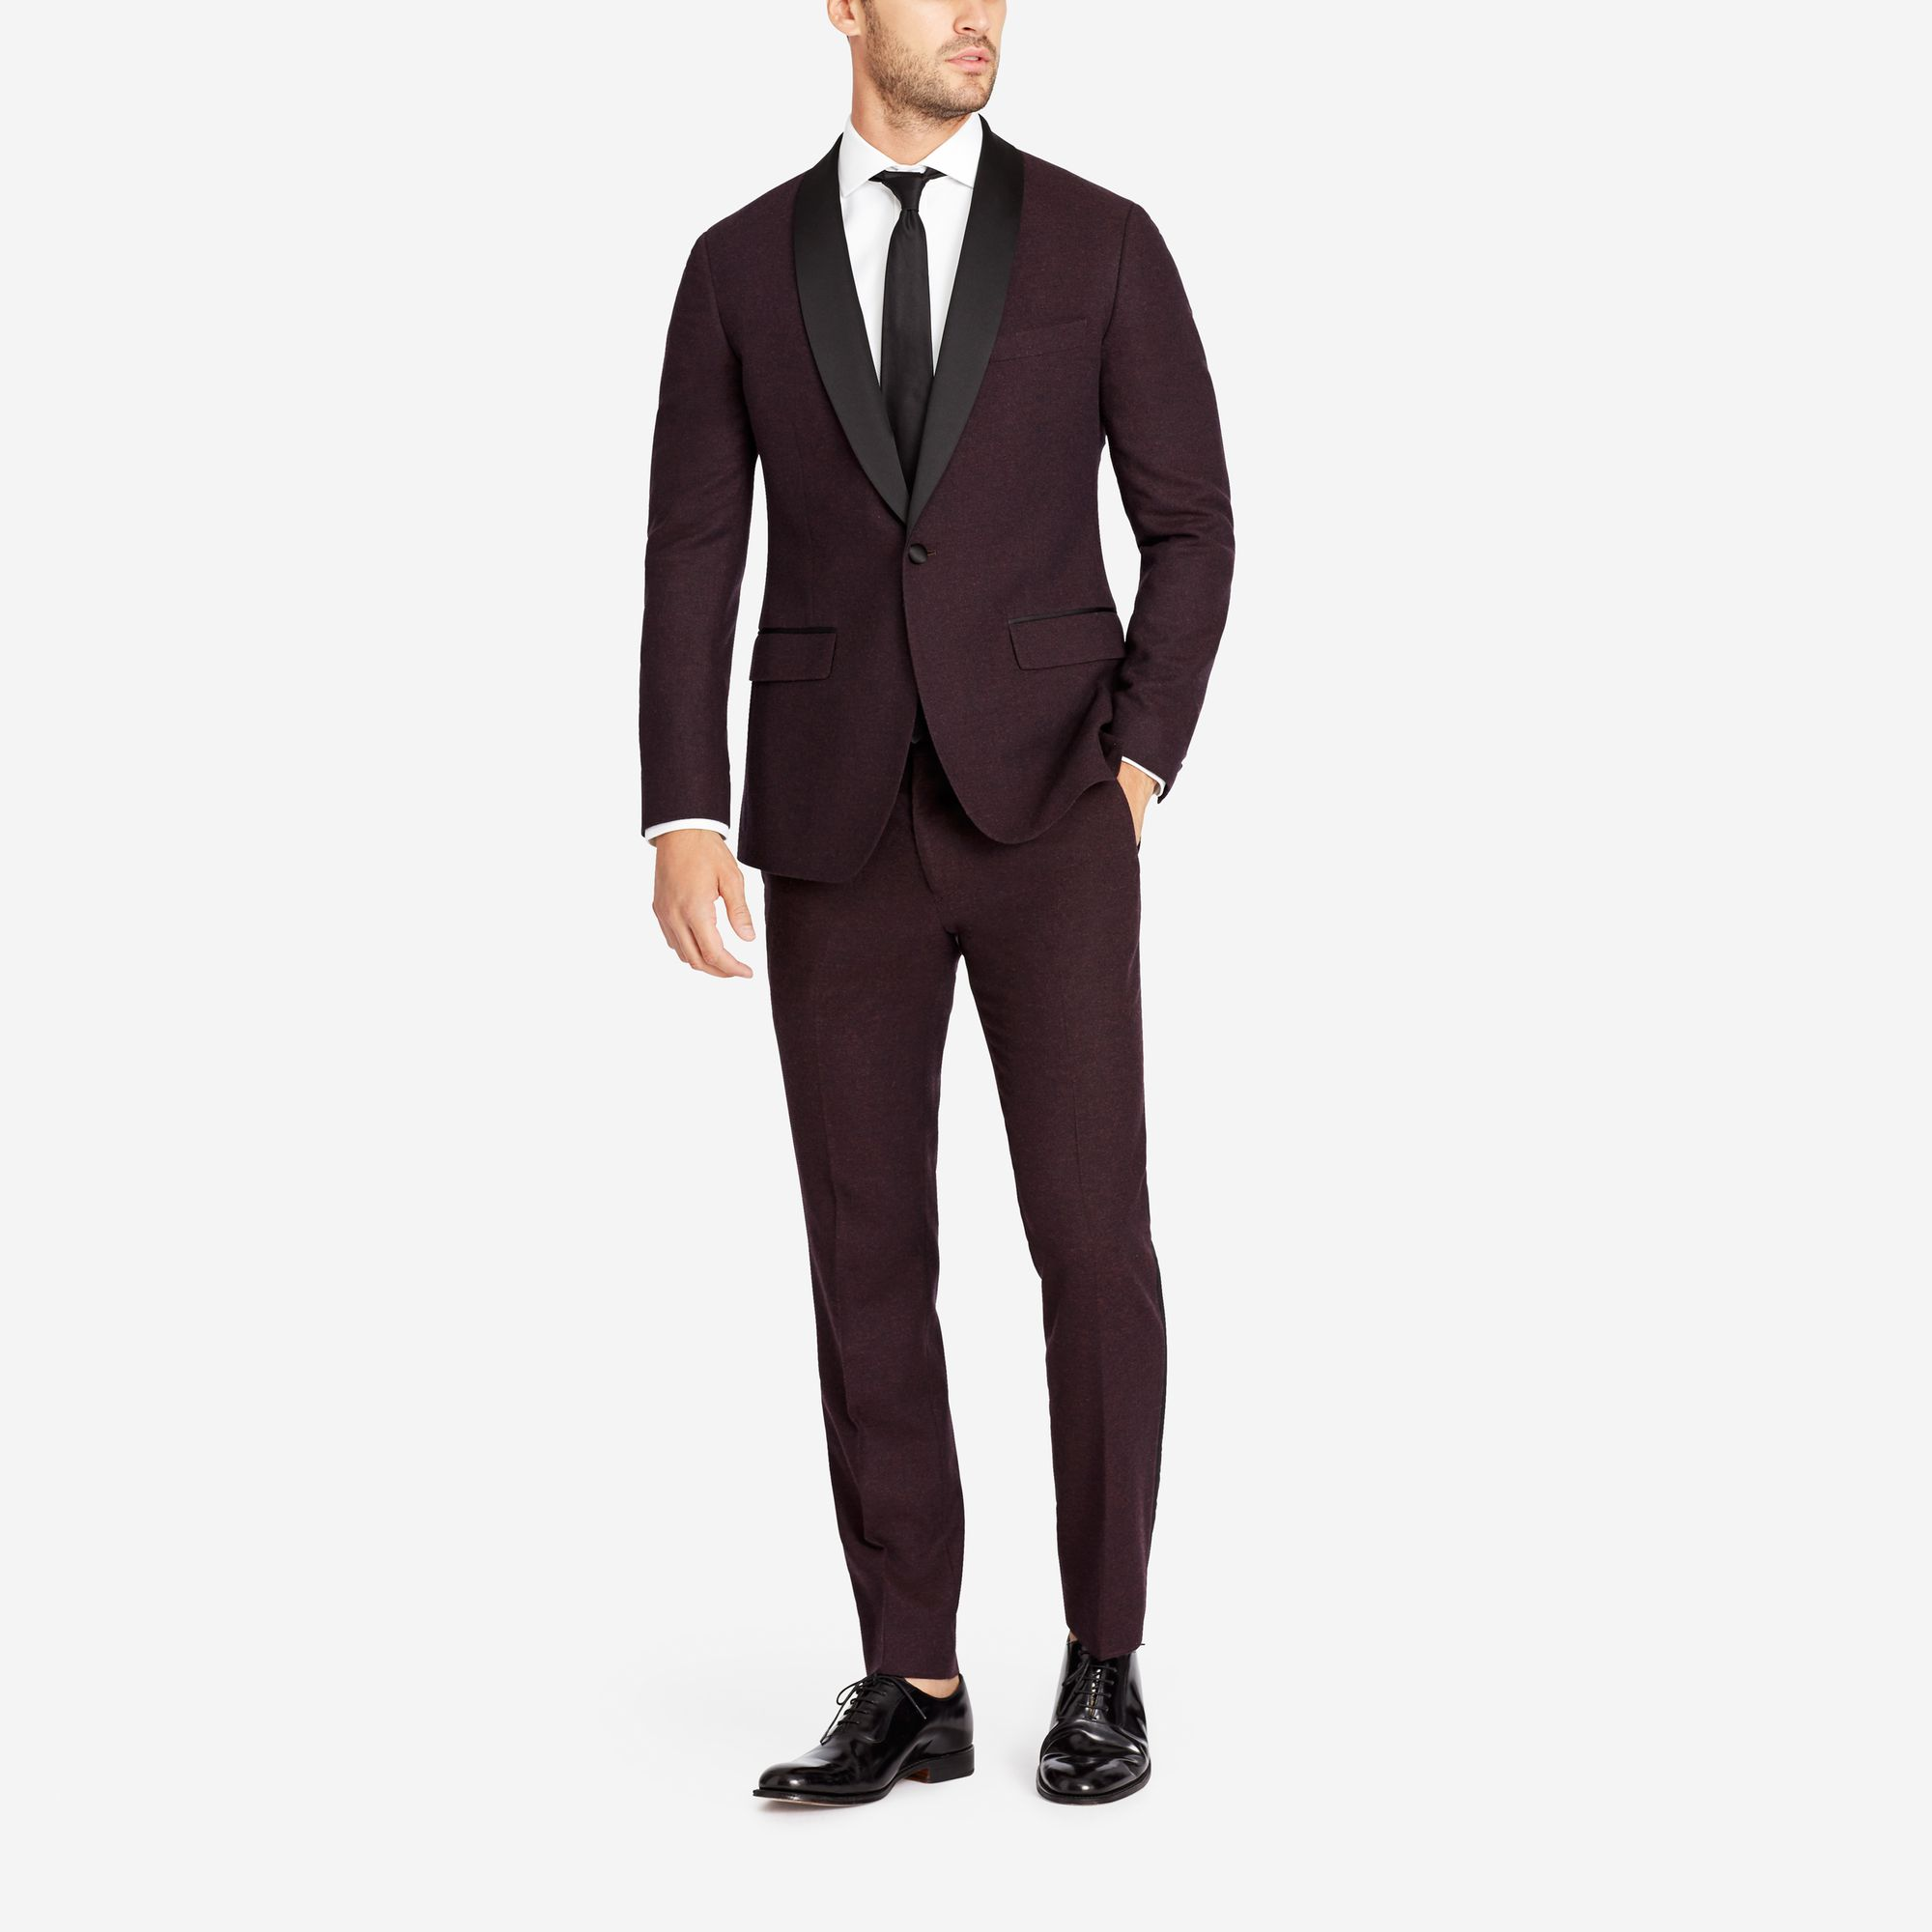 Fall/Winter Suiting  The temperatures have dropped, your sense of style shouldn't. Suit up in classic, perfectly tailored looks in heavier, world-class fabrics and seasonal patterns. - © Bonobos